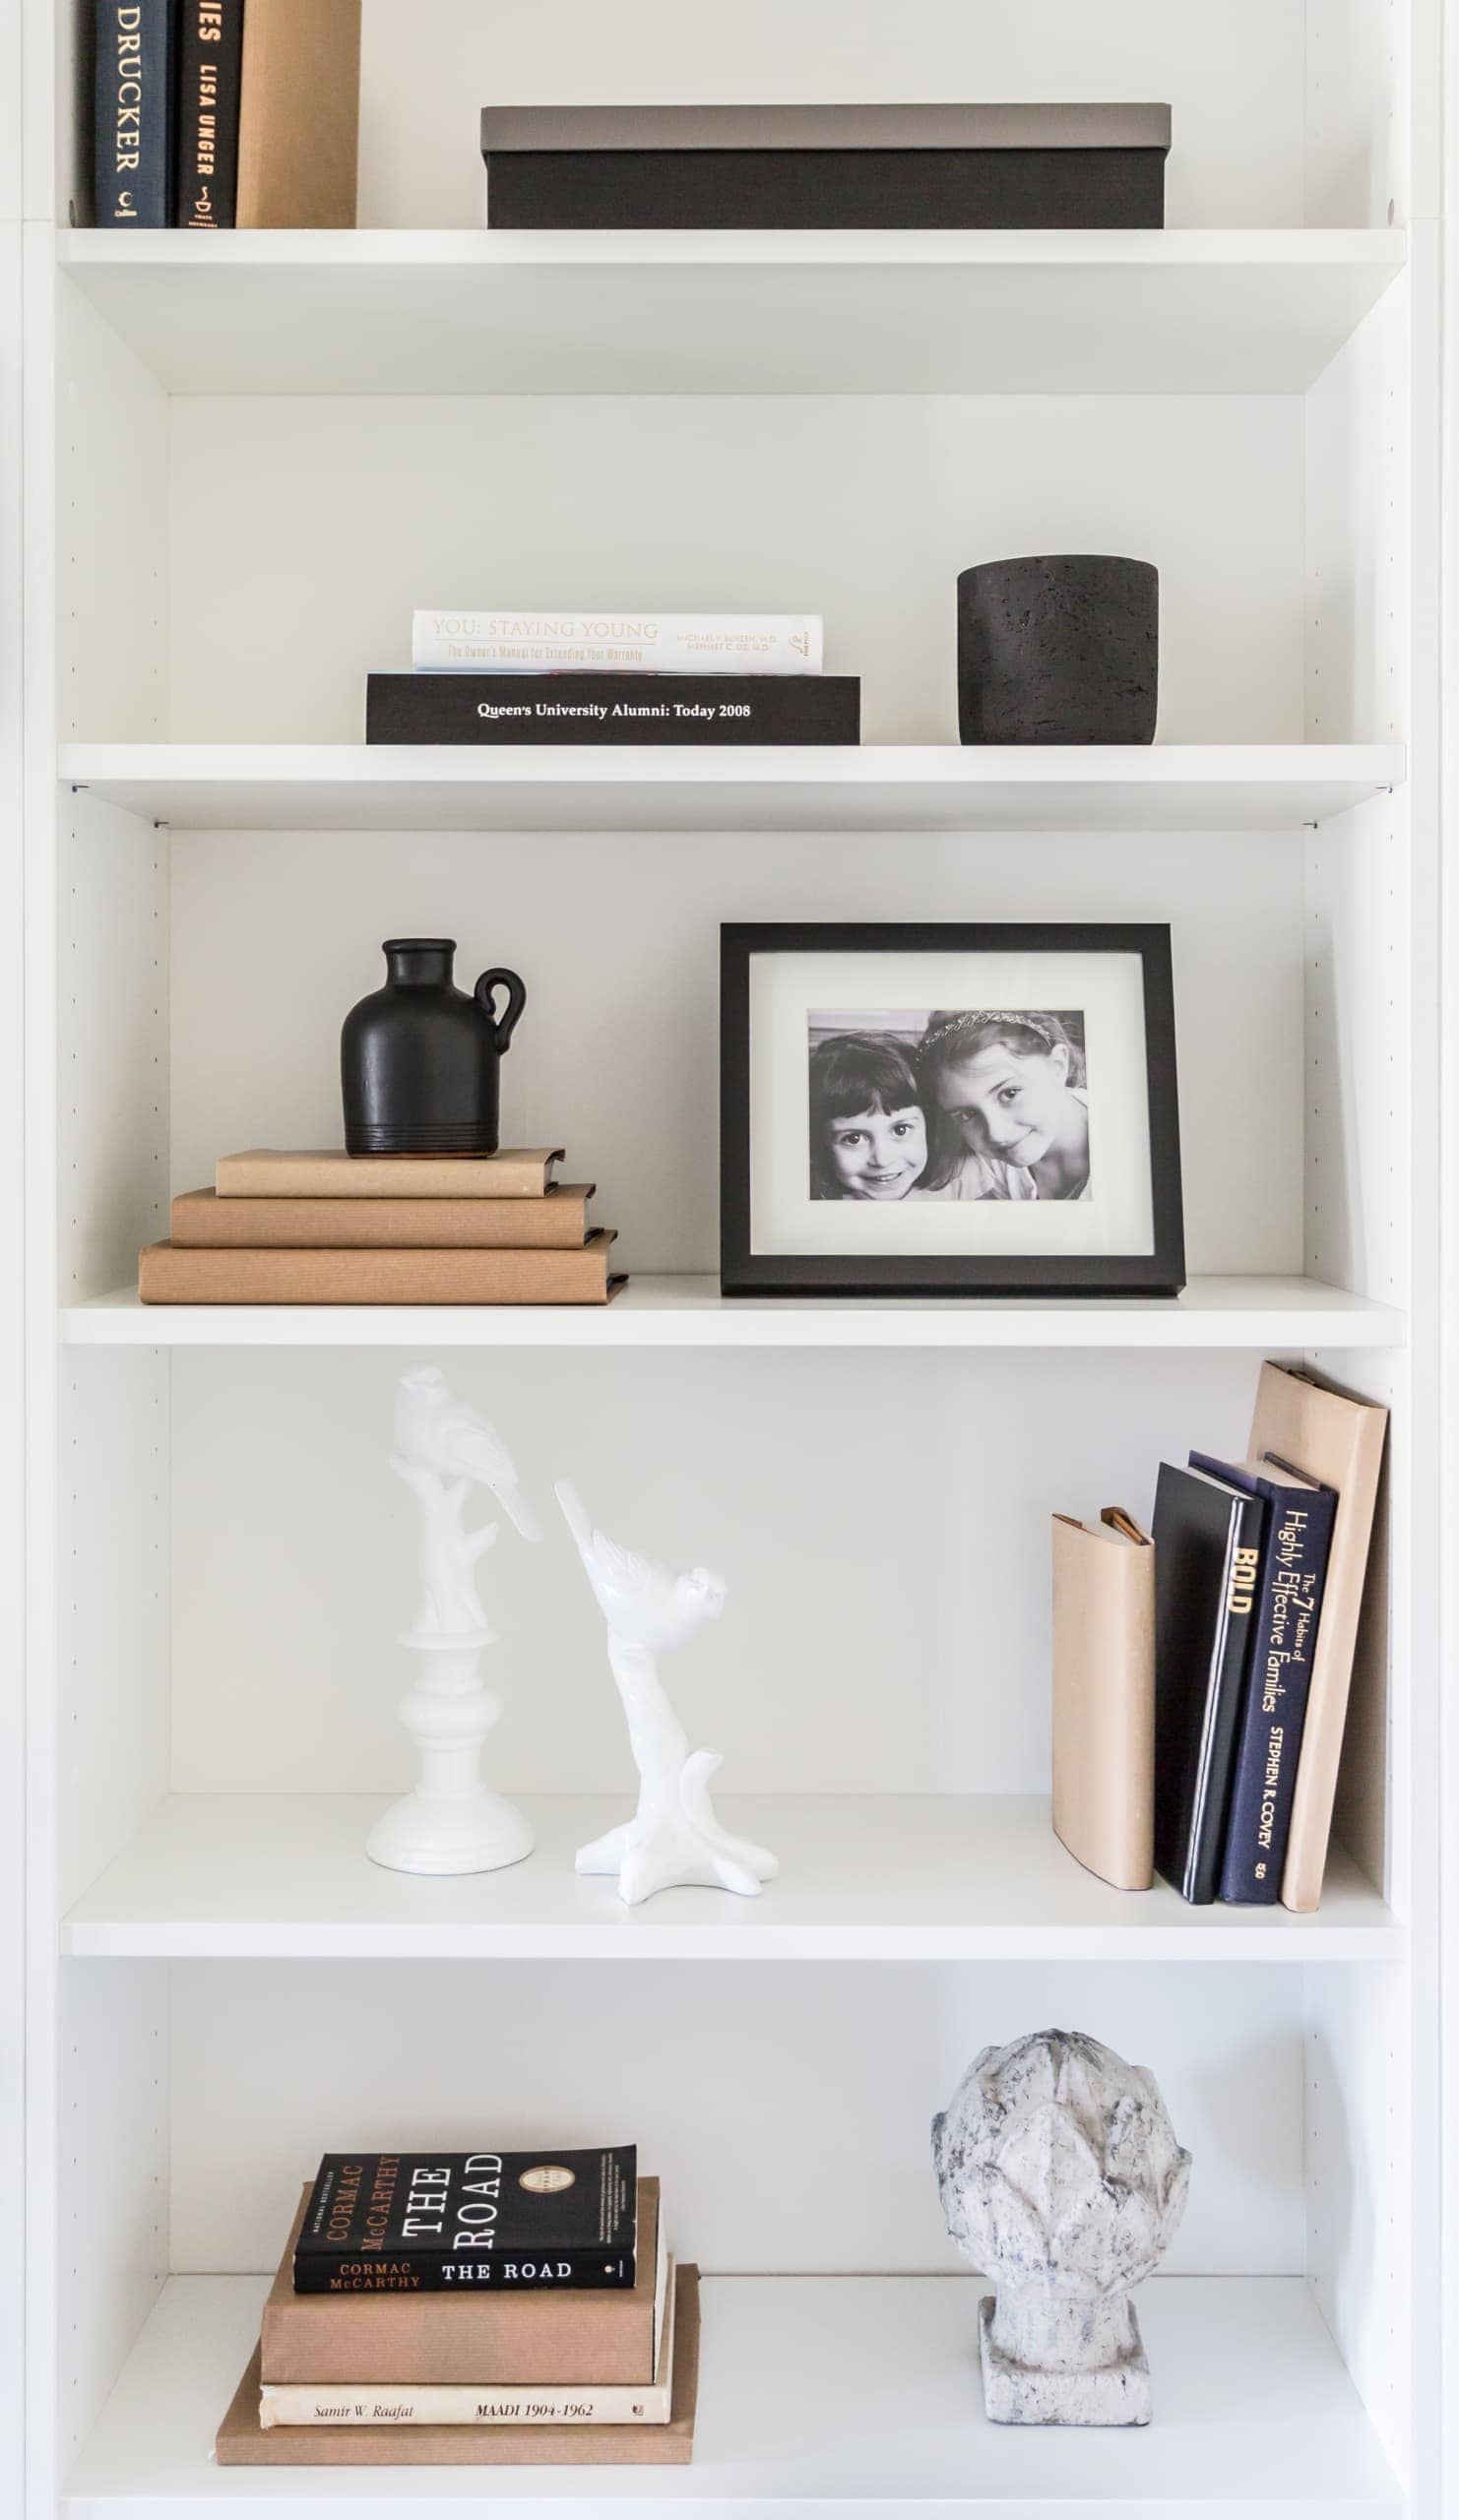 Bookcase with an assortment of decorations on it